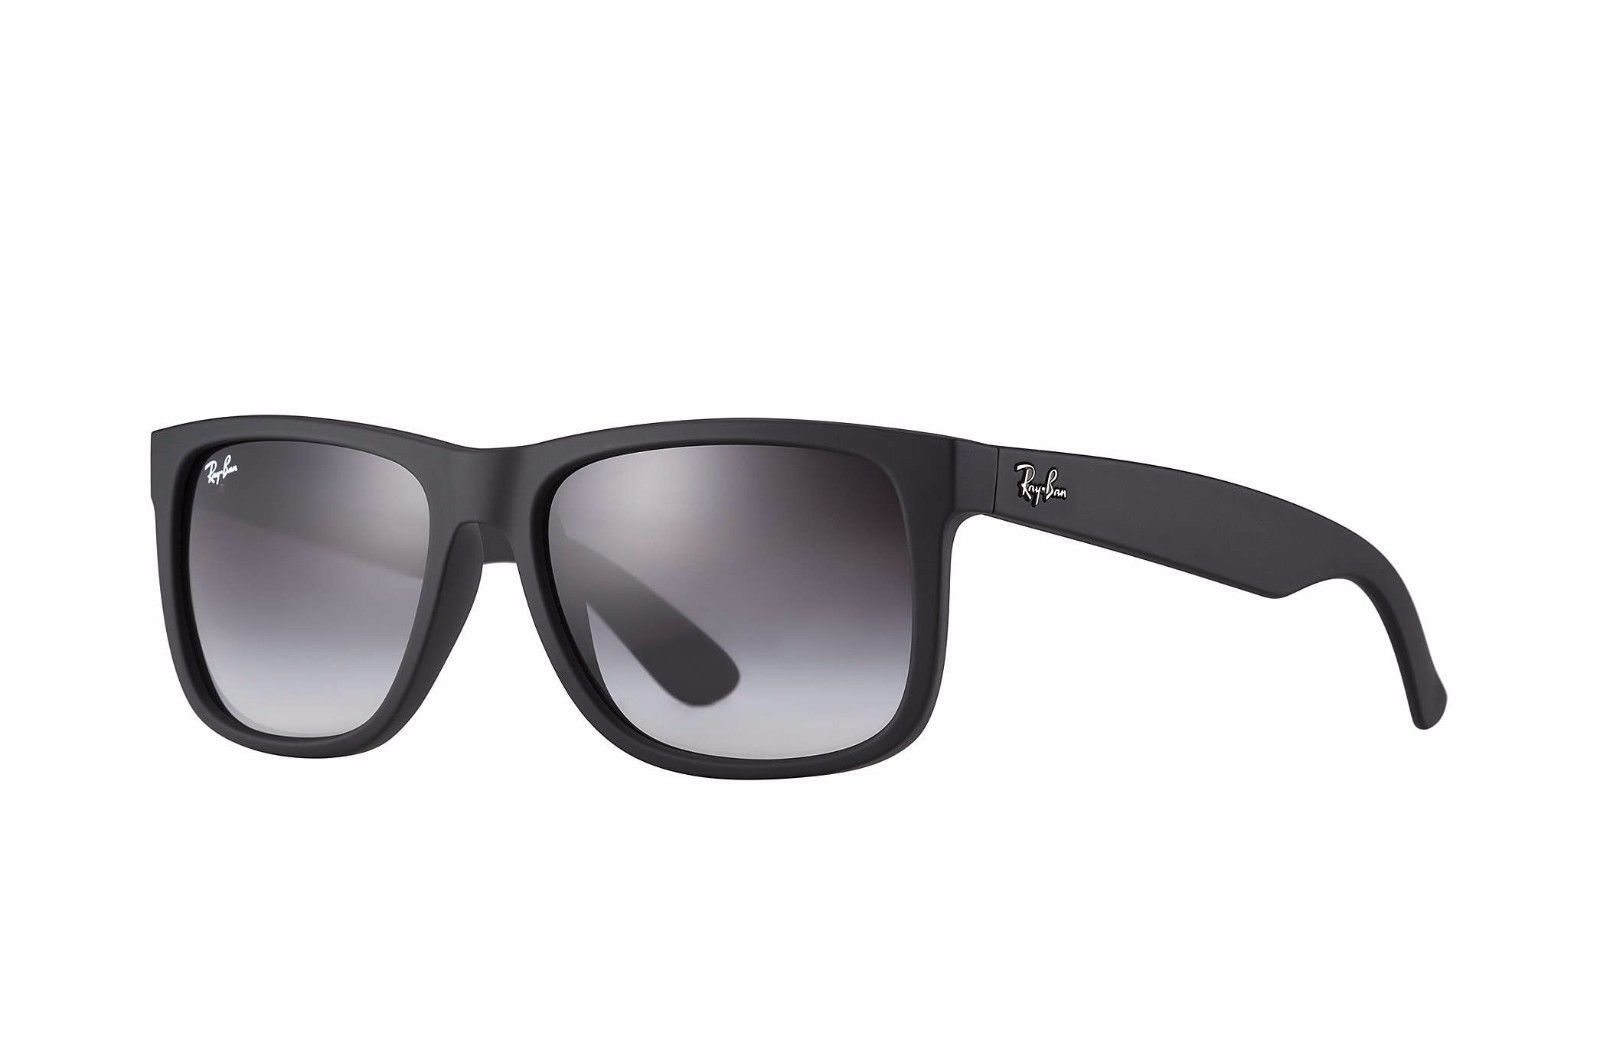 Ray-Ban RB4165 Justin Sunglasses 601/8G Black Frame/Grey Gradient ...